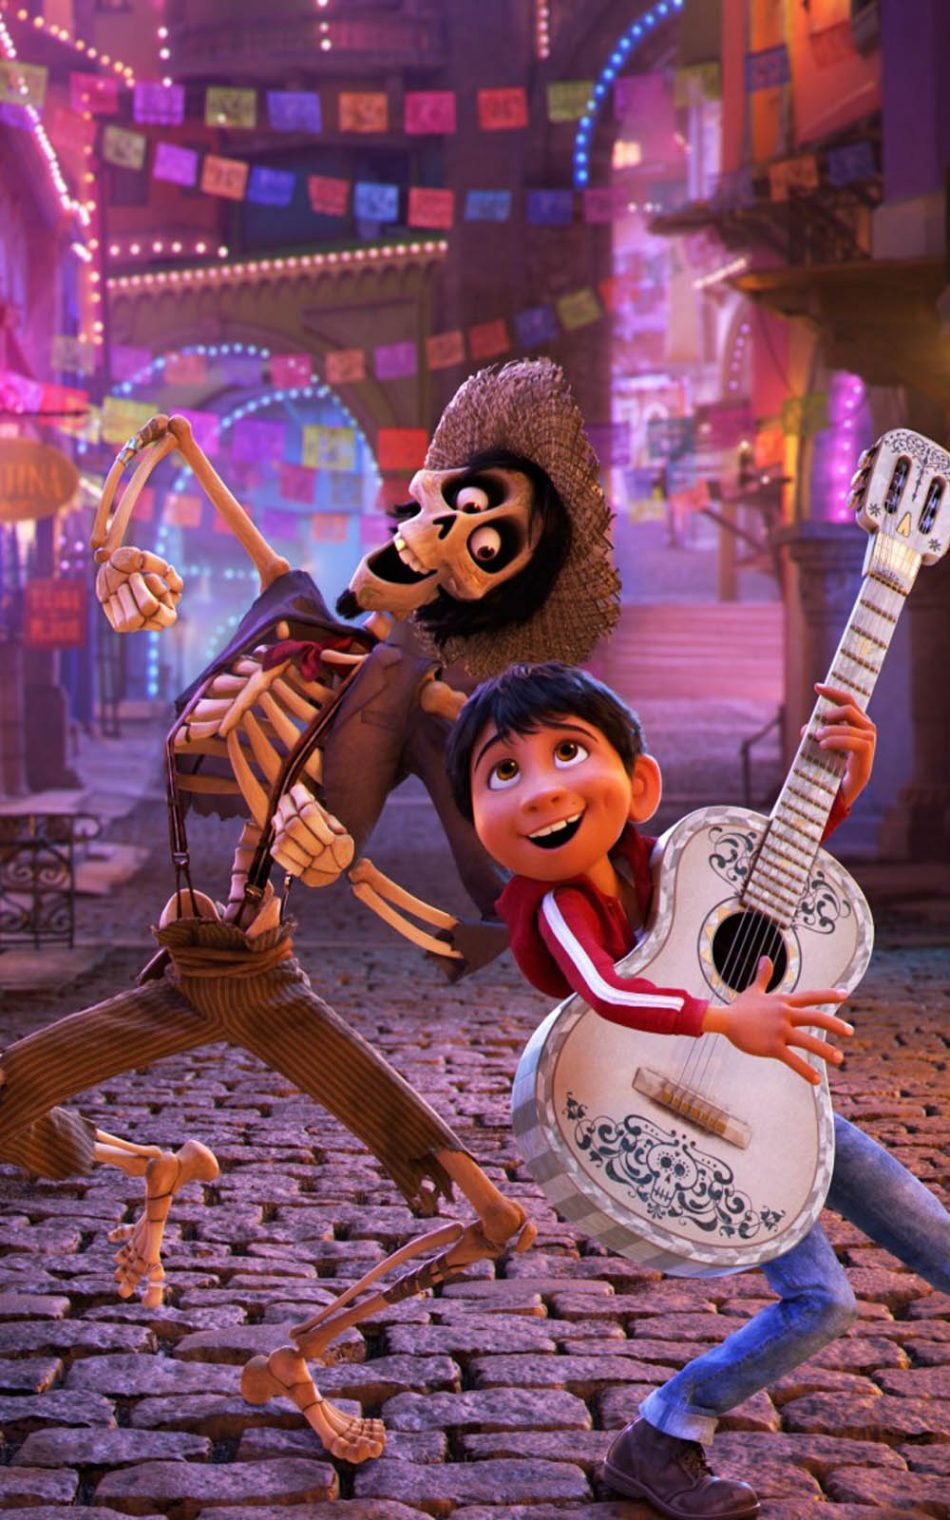 coco animation movie 2017 - download free pure 4k ultra hd mobile